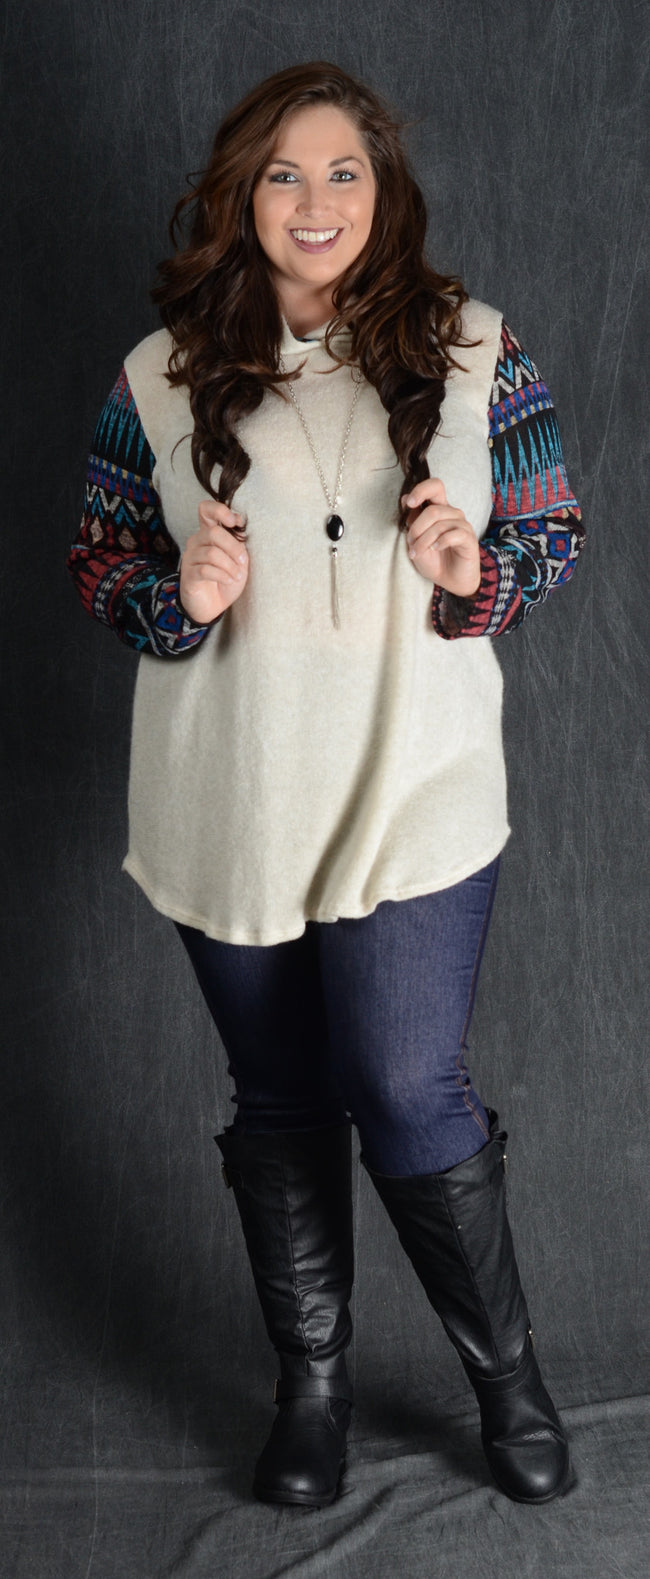 Ivory Contrast Sleeve Hooded Top - www.mycurvystore.com - Curvy Boutique - Plus Size